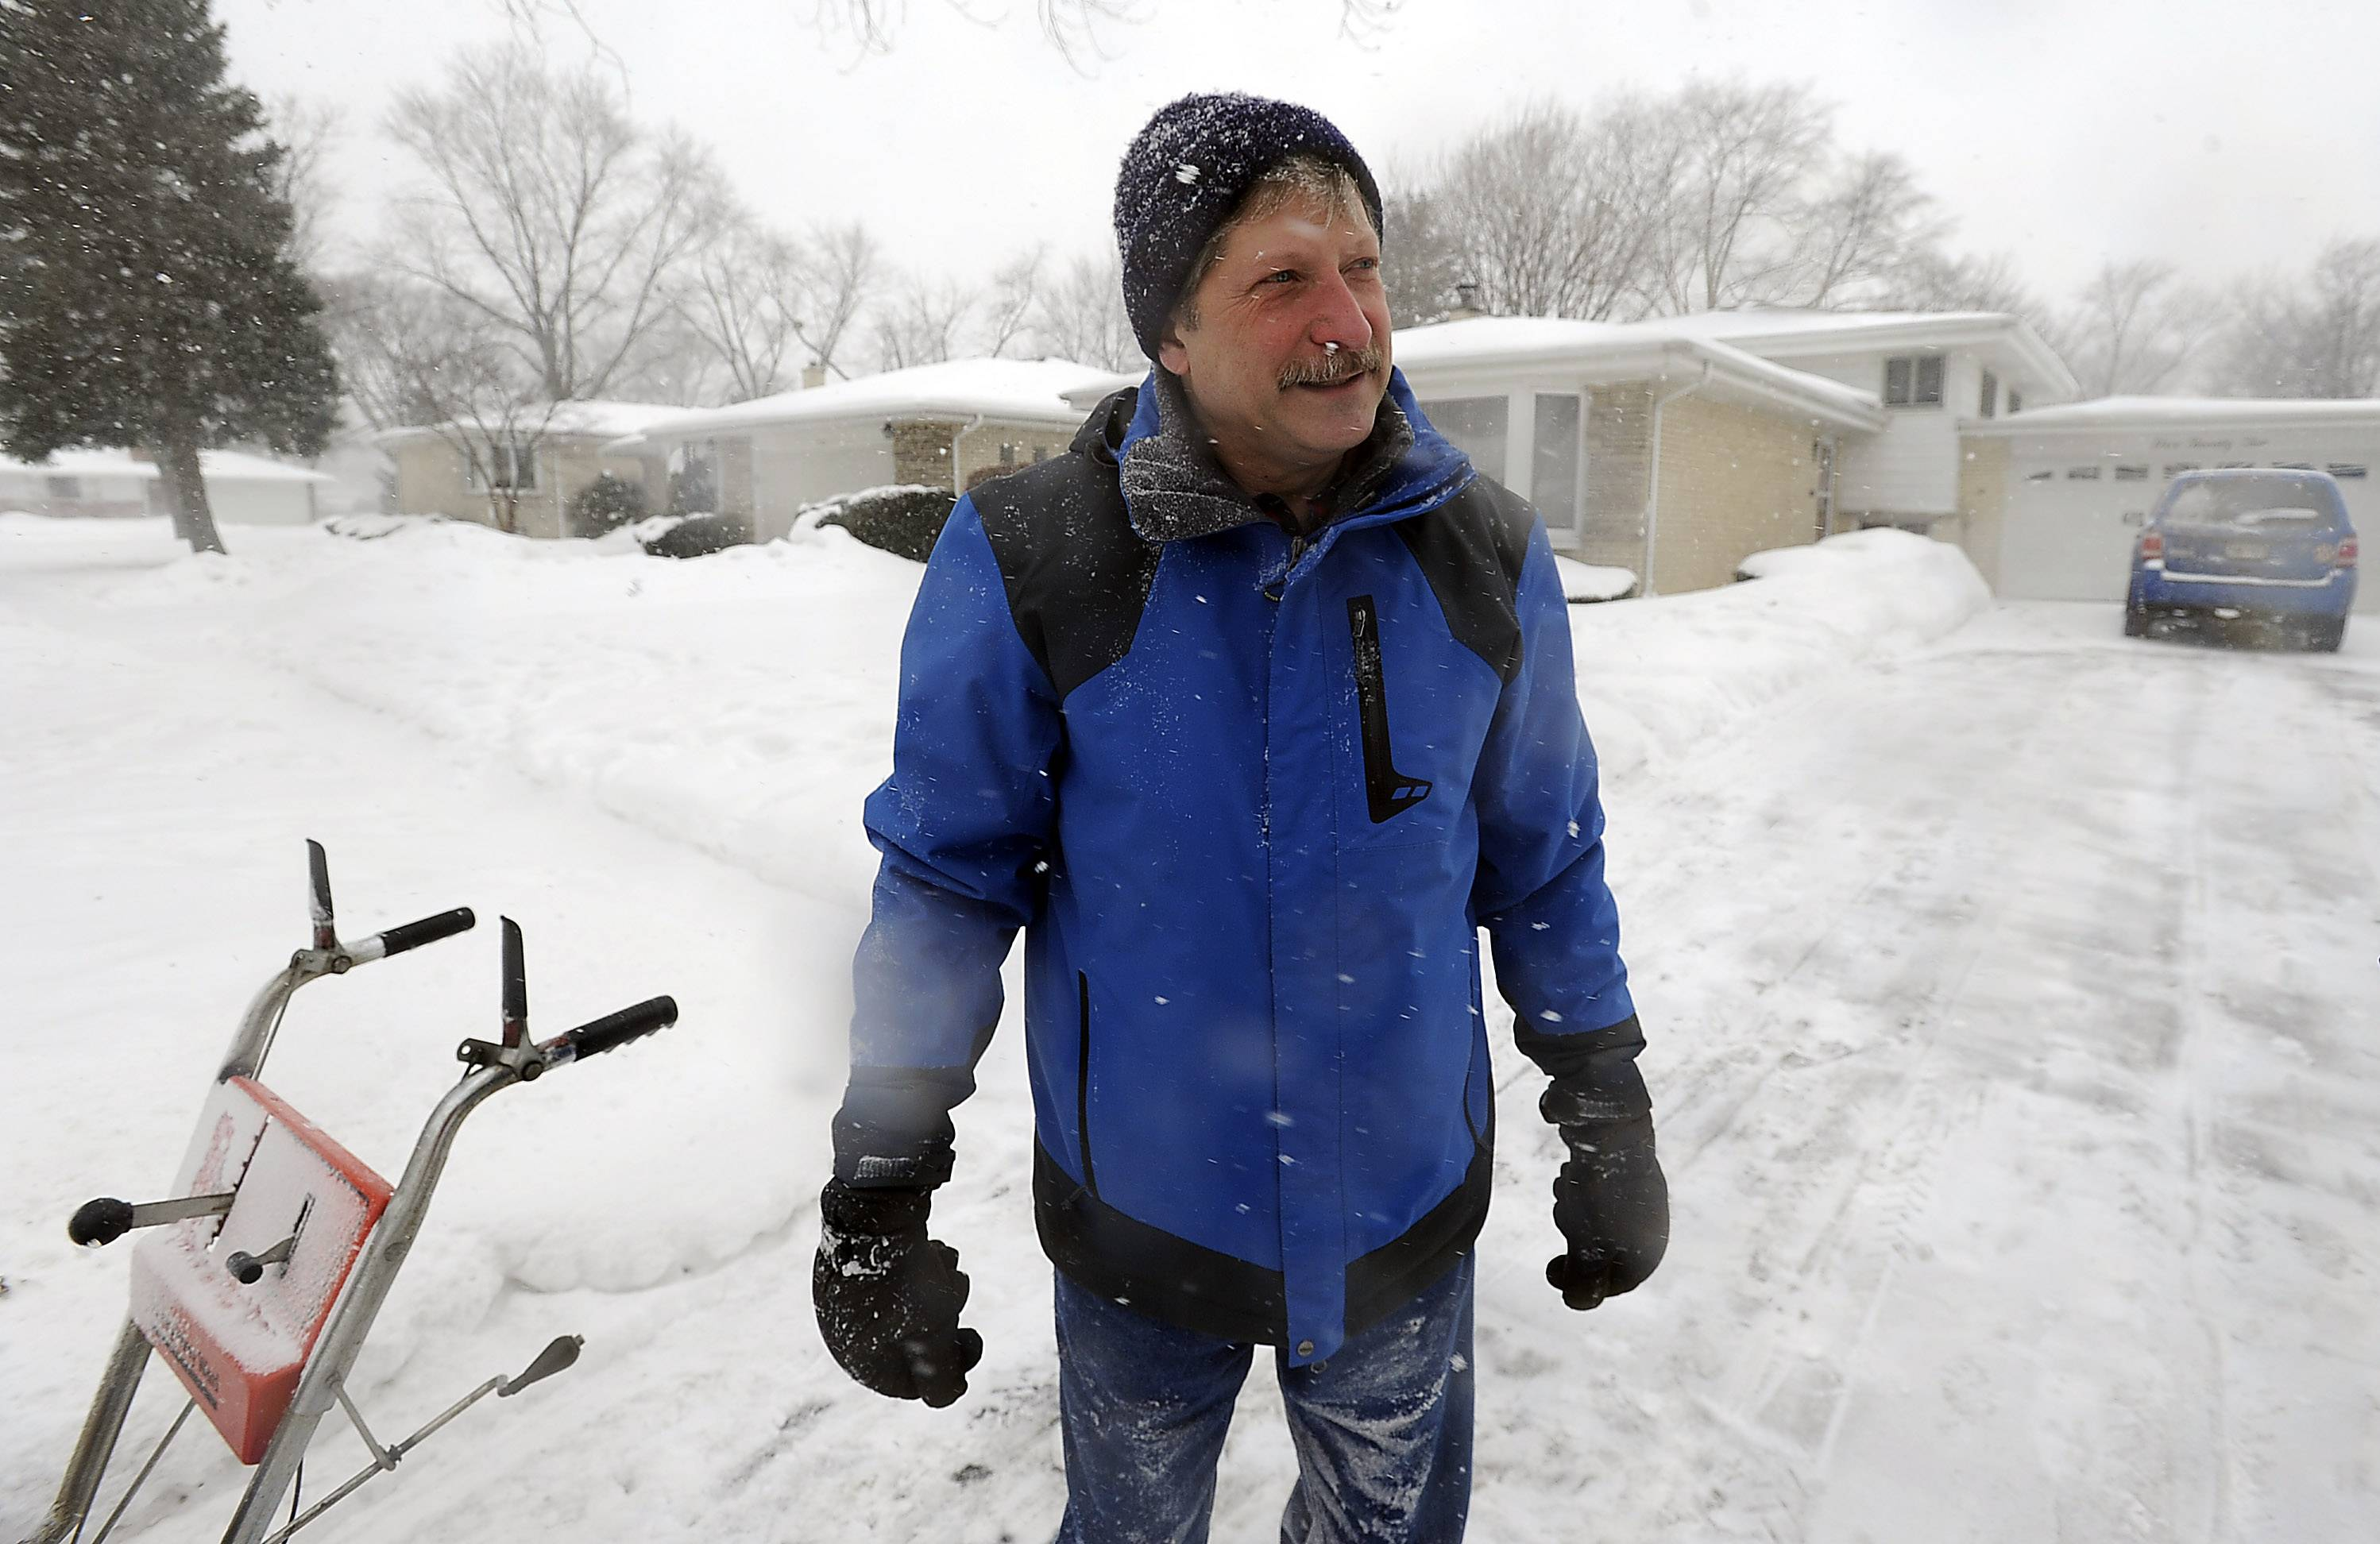 Without the single-digit temperatures, Monday's snowplowing effort seems relatively easy, says Jim Sieburg. The longtime Des Plaines resident, who turns 57 today, is a common sight in his neighborhood whenever it snows as he clears paths for several of his neighbors.